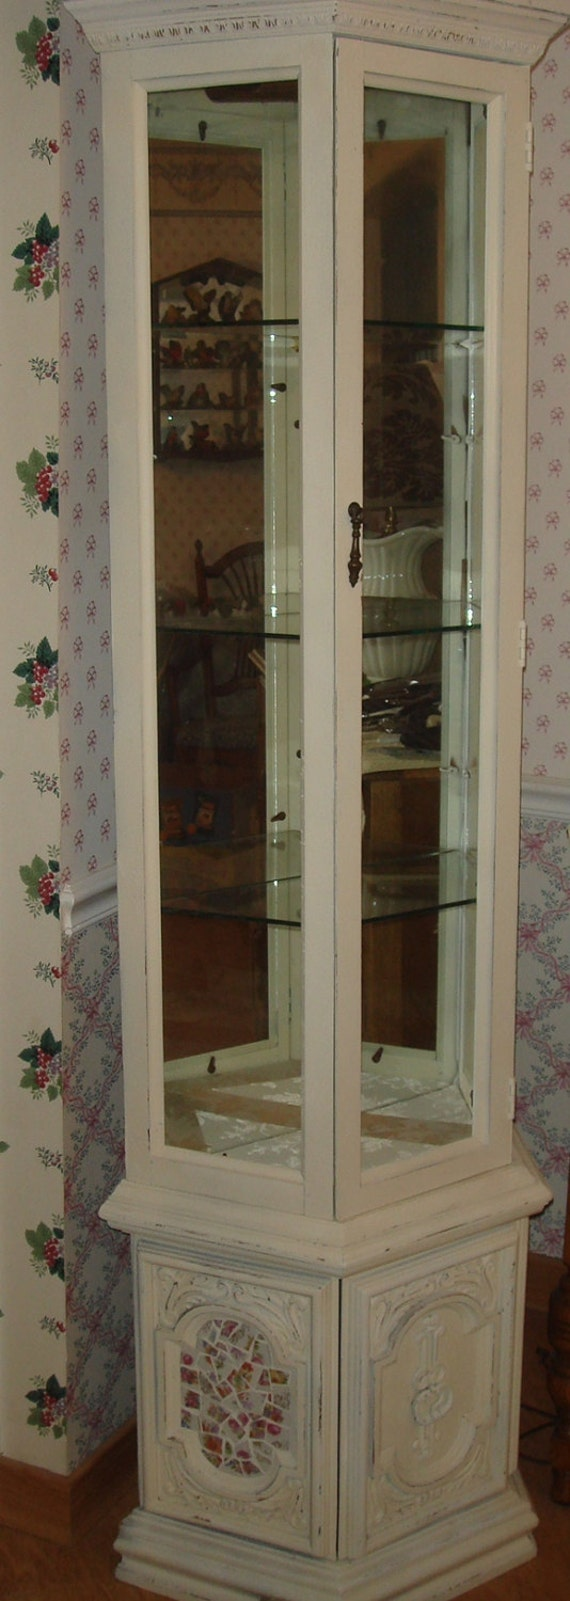 Items similar to shabby chic display case on etsy for Case arredate shabby chic